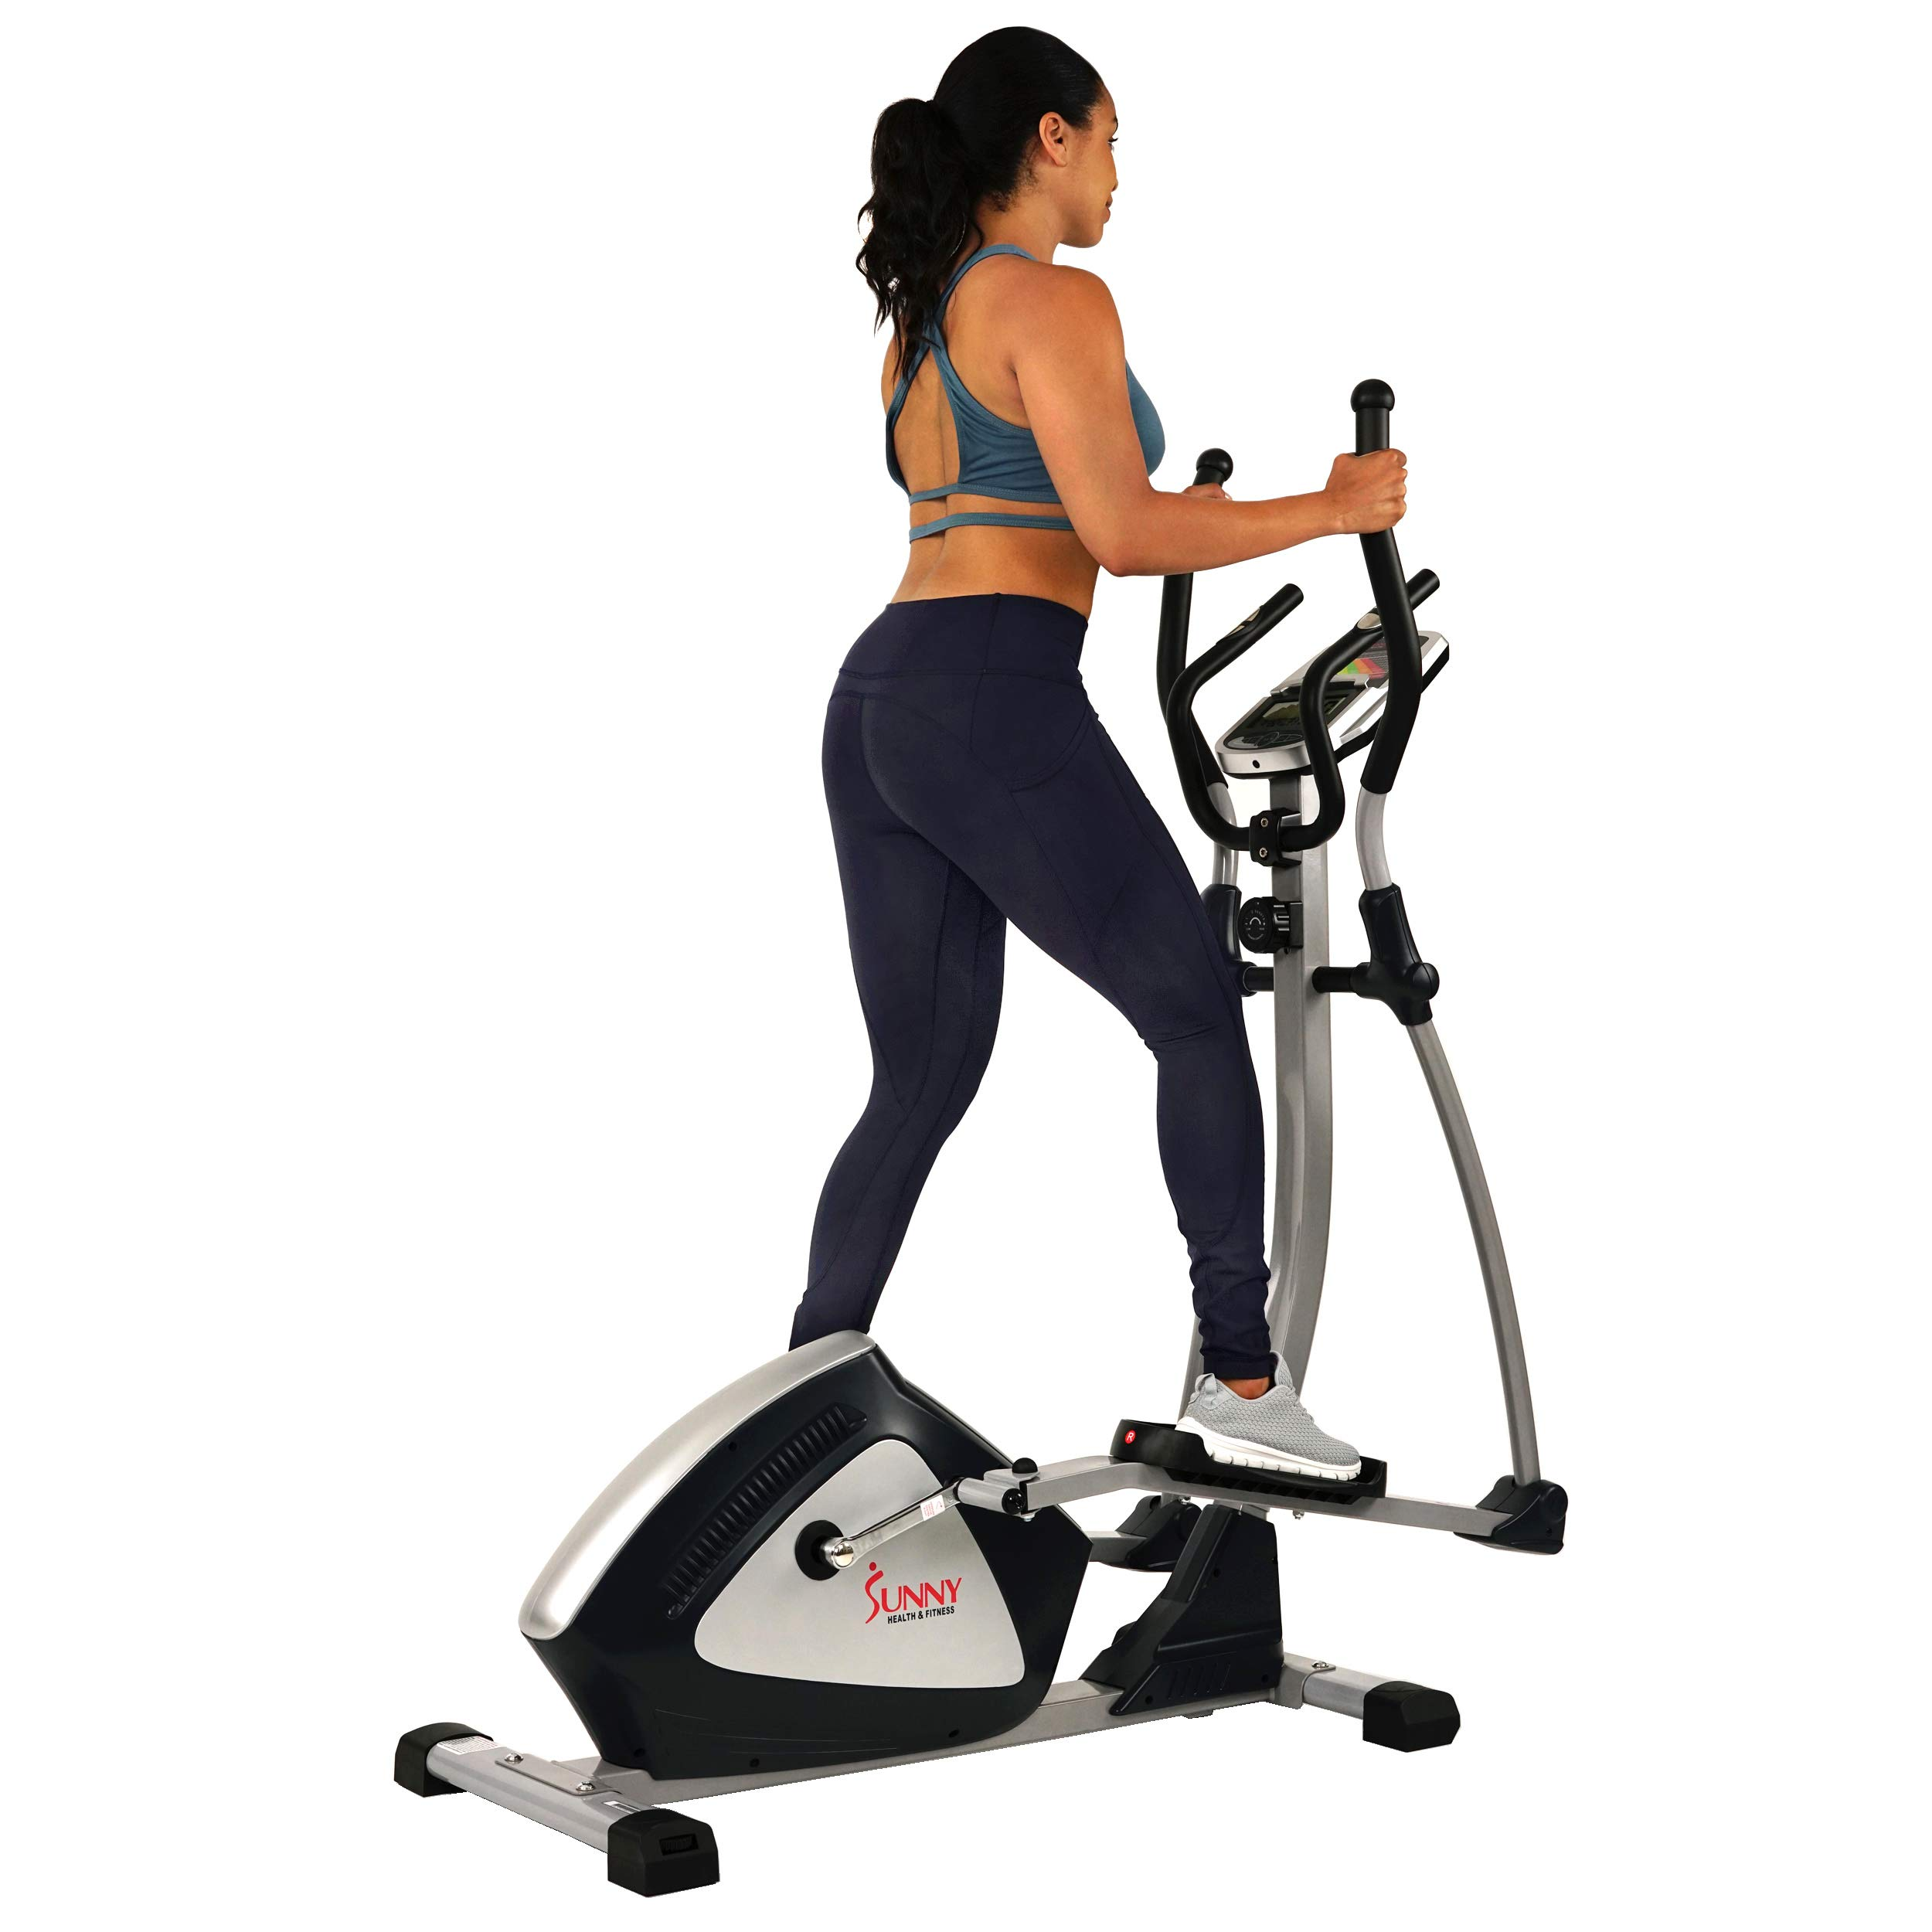 Sunny Health & Fitness Magnetic Elliptical Trainer Elliptical Machine w/  LCD Monitor and Heart Rate Monitoring - Endurance Zone - SF-E3804 by Sunny Health & Fitness (Image #11)